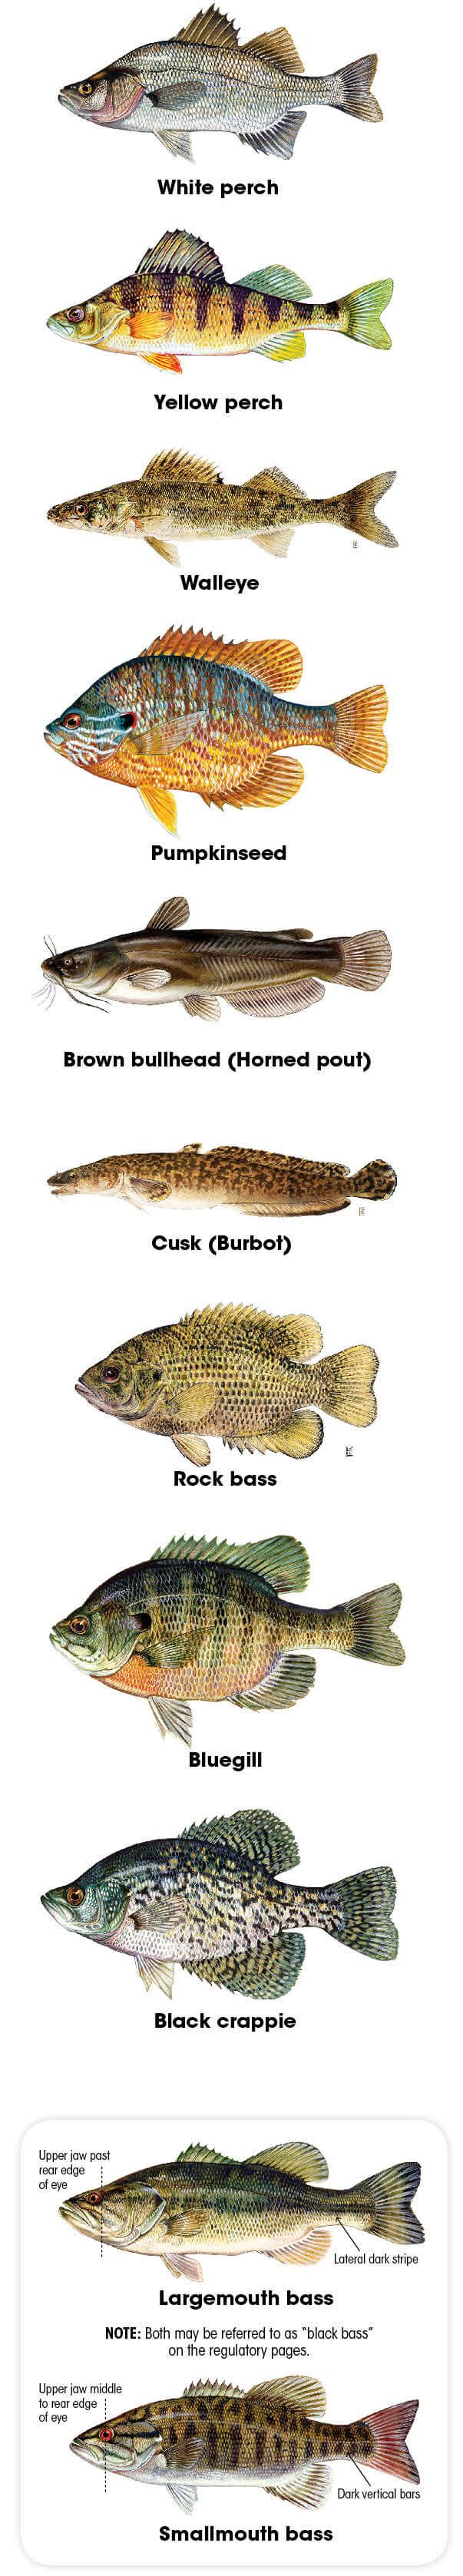 Illustrations, this page: Landlocked Atlantic salmon, American shad, Rainbow smelt ©NHFG Victor Young; Brown trout, Rainbow trout, Chain pickerel, Brook trout ©Duane Raver; Northern pike, Round and Lake whitefish ©Ellen Edmondson (Image courtesy of the New York State Department of Environmental Conservation. All rights reserved.);